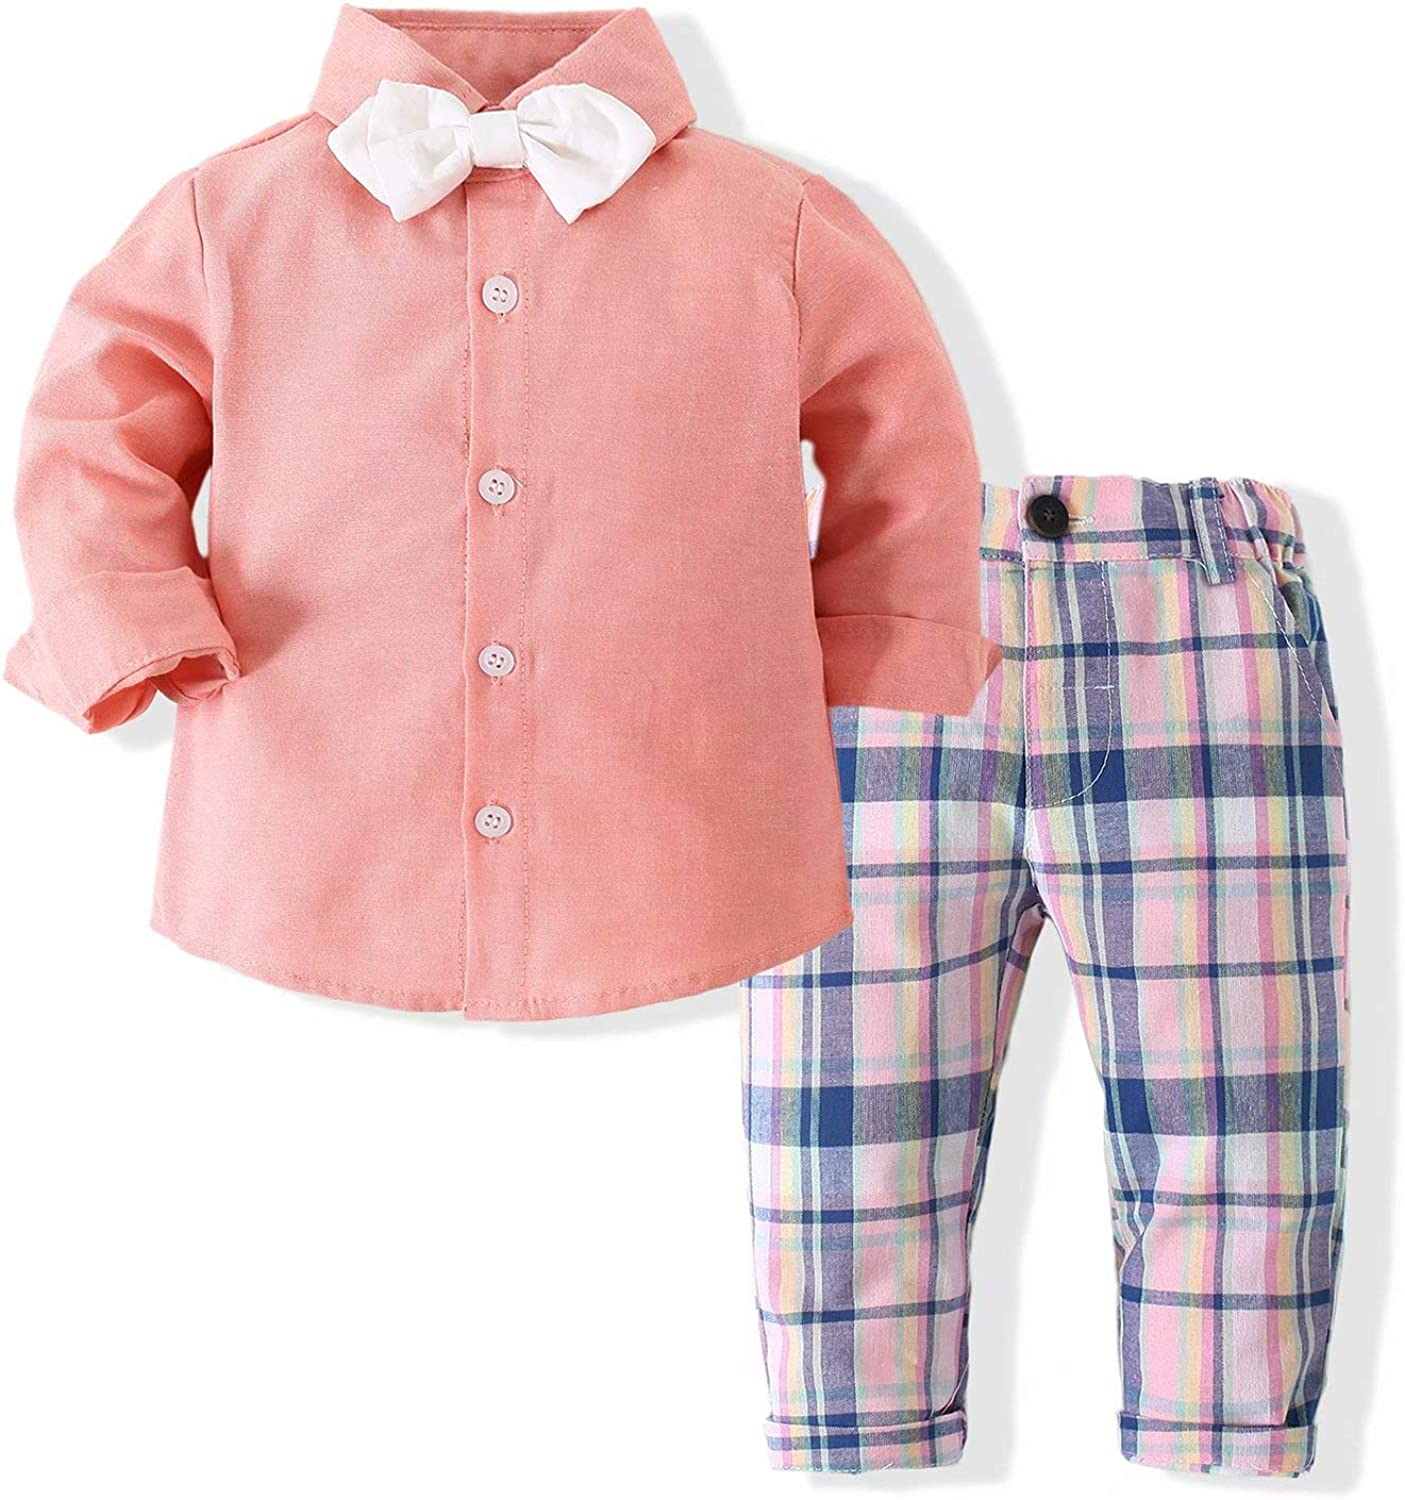 Hemopos Toddler Boys 2-Piece Suit, Long Sleeve Plaid Shirt+ Jeans, Size 1-3 Years